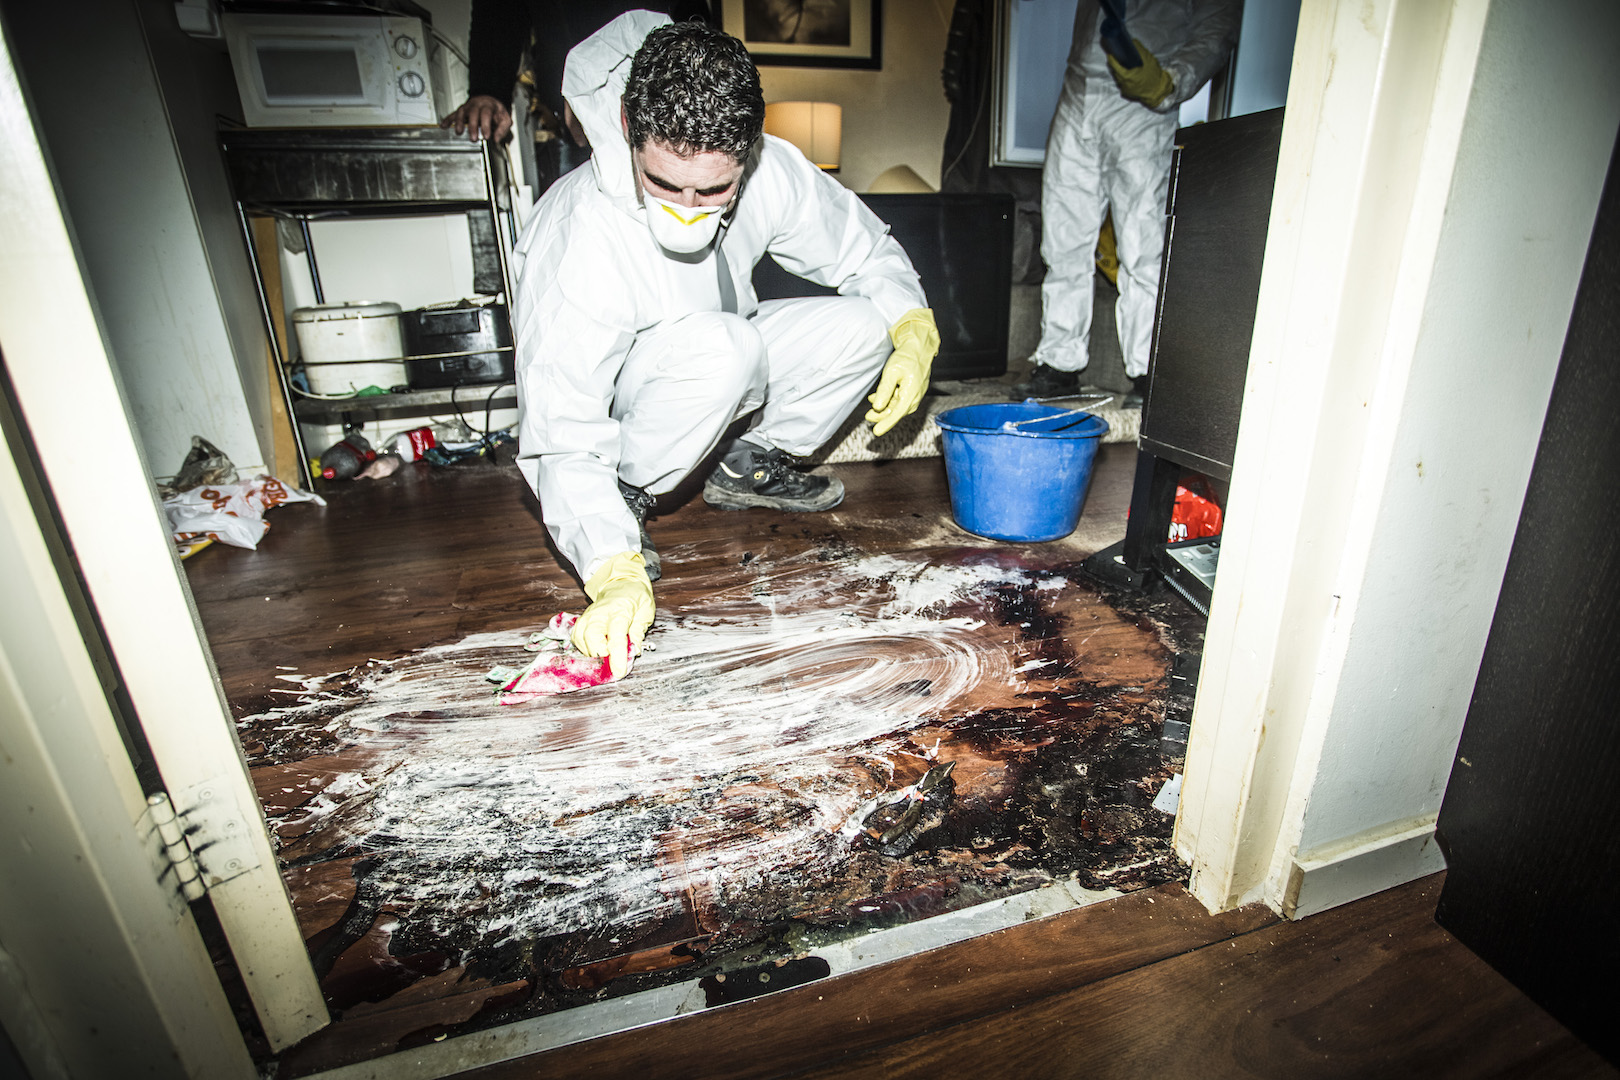 Crime scene cleaner belgie vacature